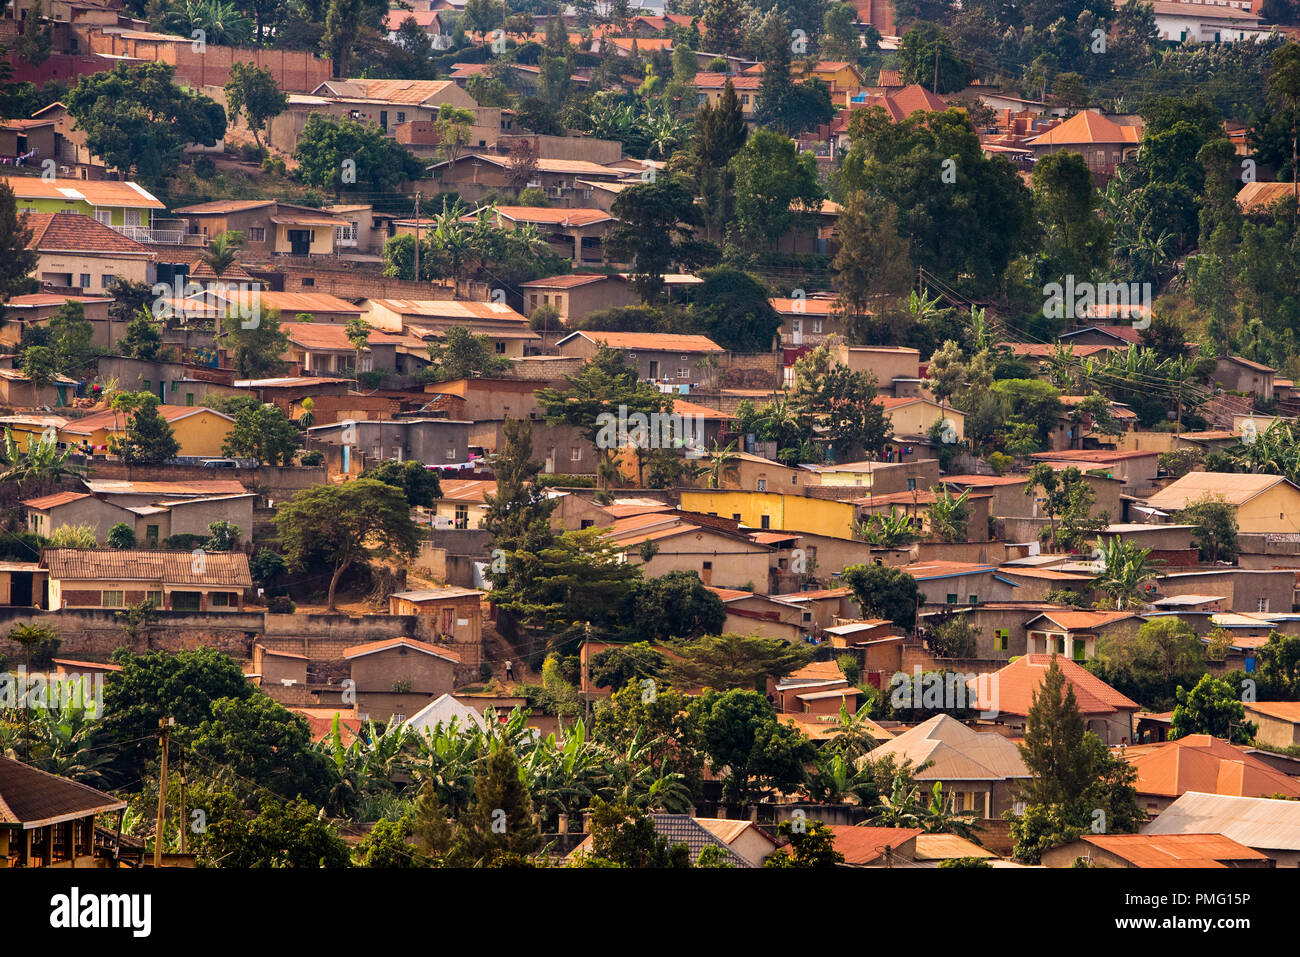 View of small, closely packed houses on a hillside in Nyamirambo, a semi-rural suburb of Kigali, Rwanda - Stock Image